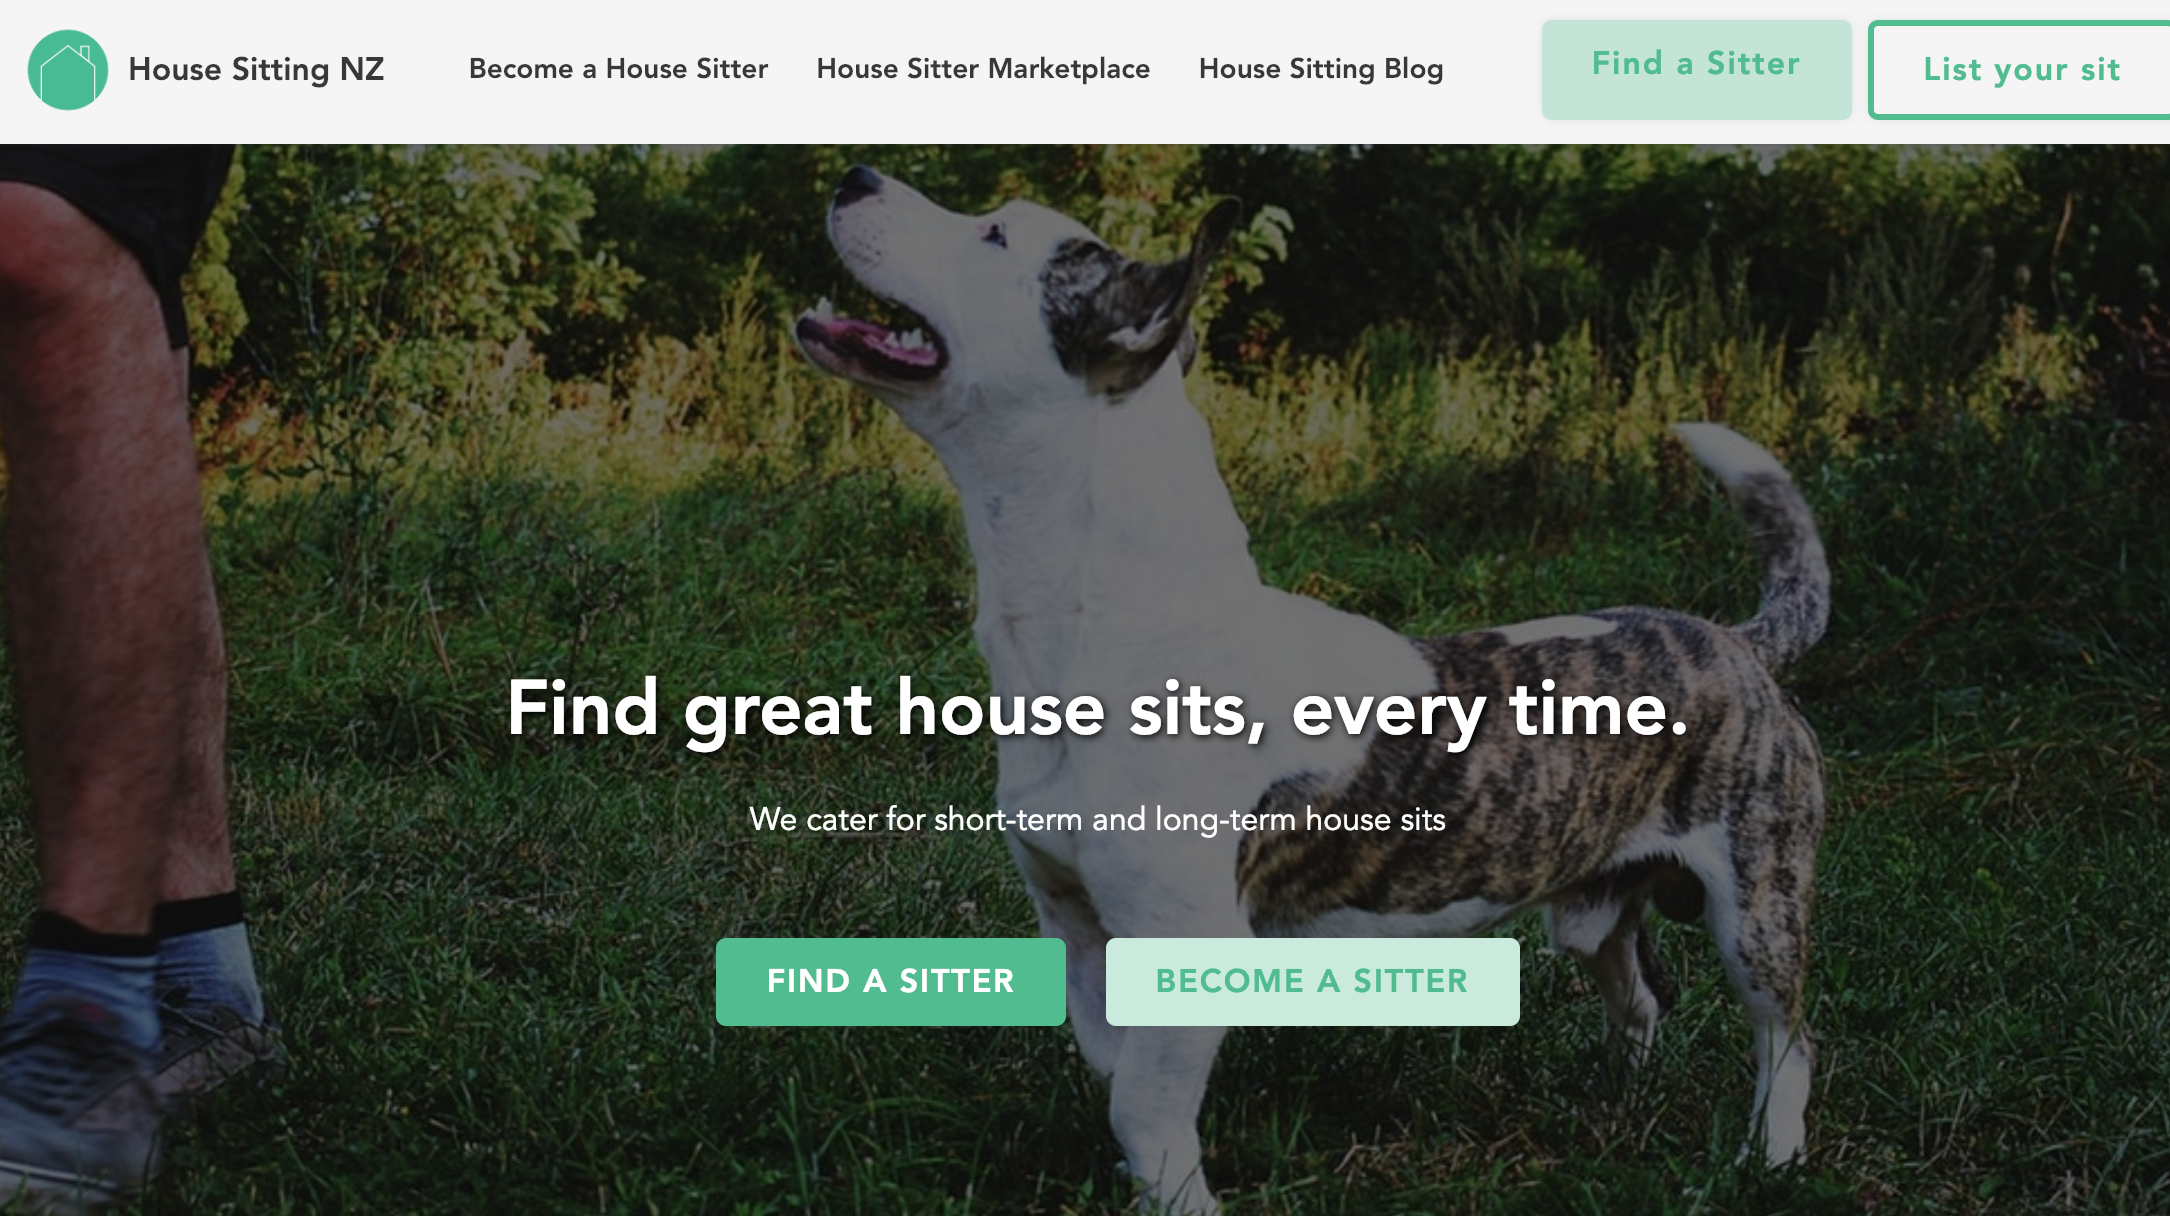 House Sitting NZ by Connor Finlayson | Unicorn Factory